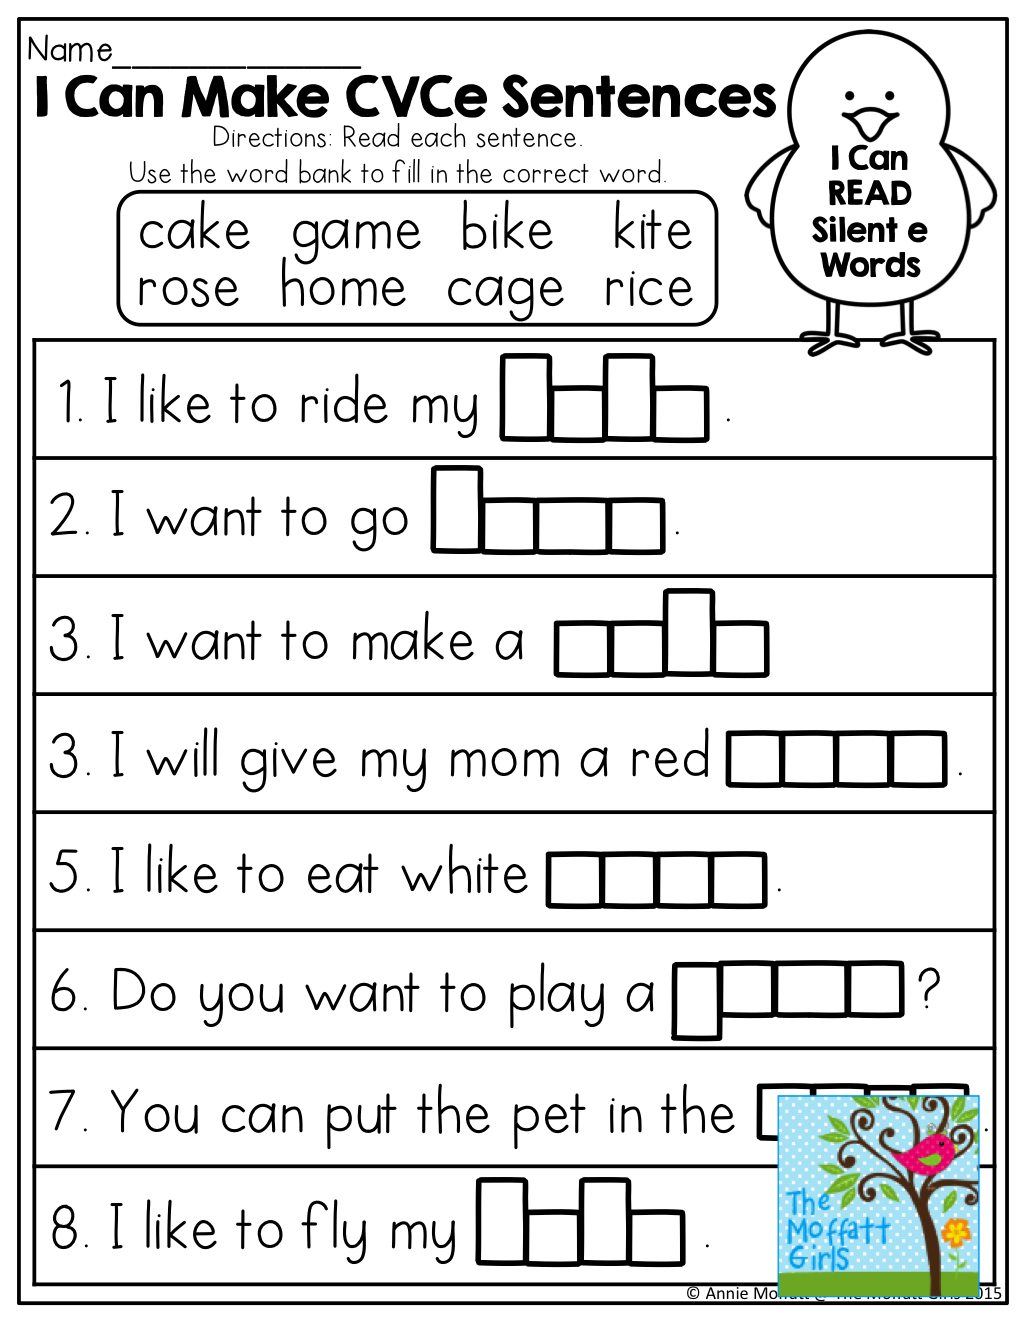 medium resolution of Cloze Sentence Worksheets Free   Printable Worksheets and Activities for  Teachers